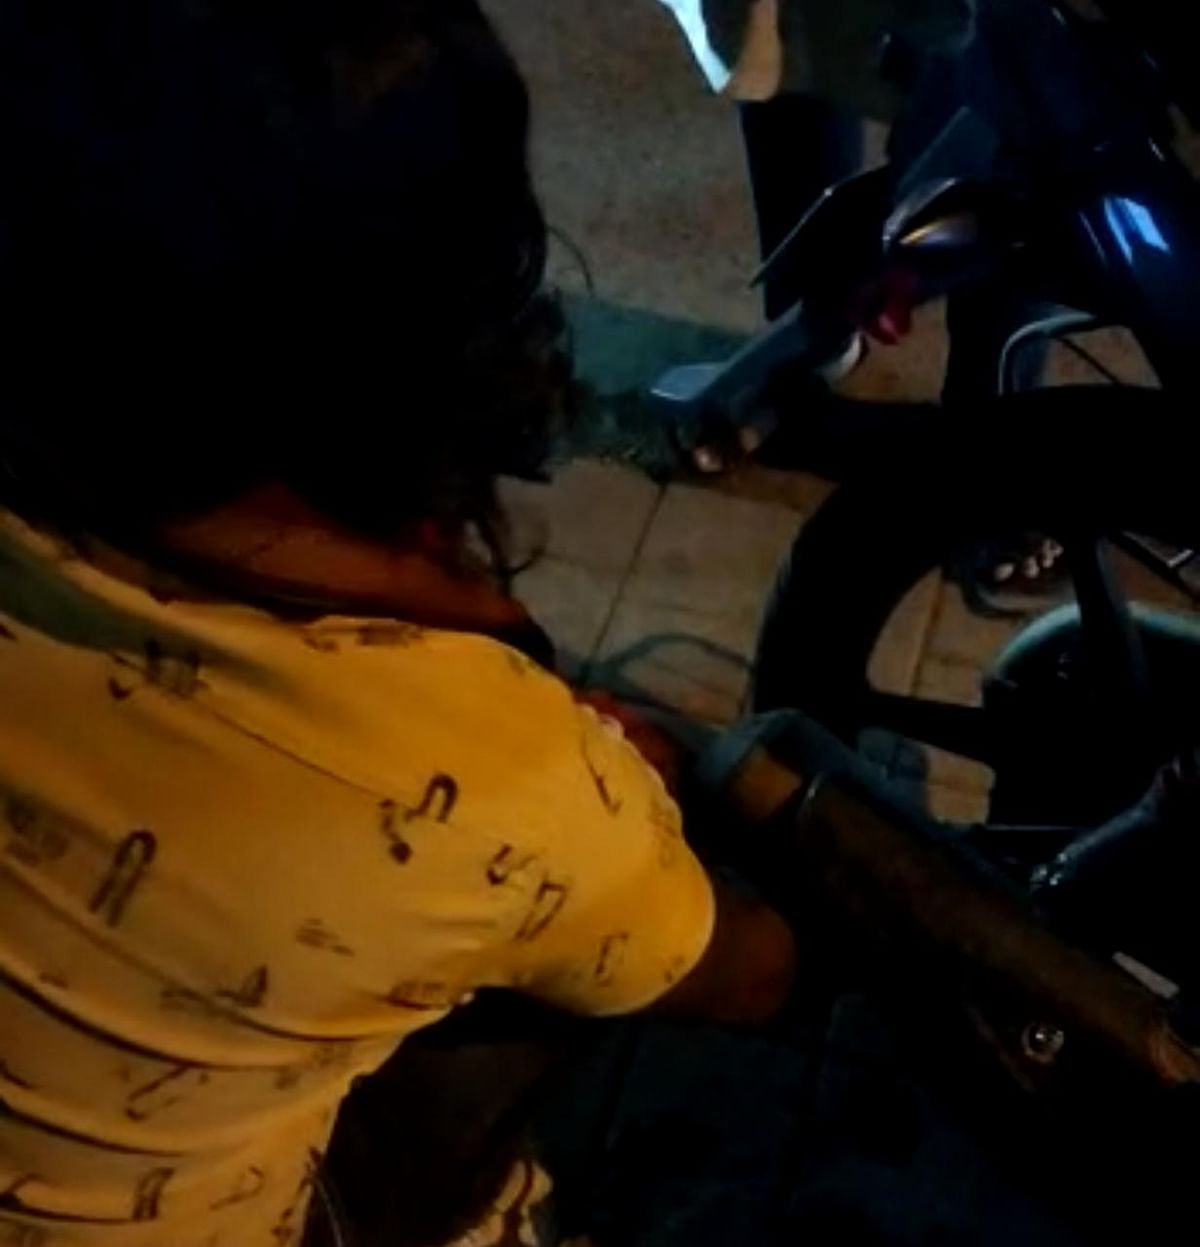 An autorickshaw driver deflating tyre of bike taxi in Indore on early Monday morning